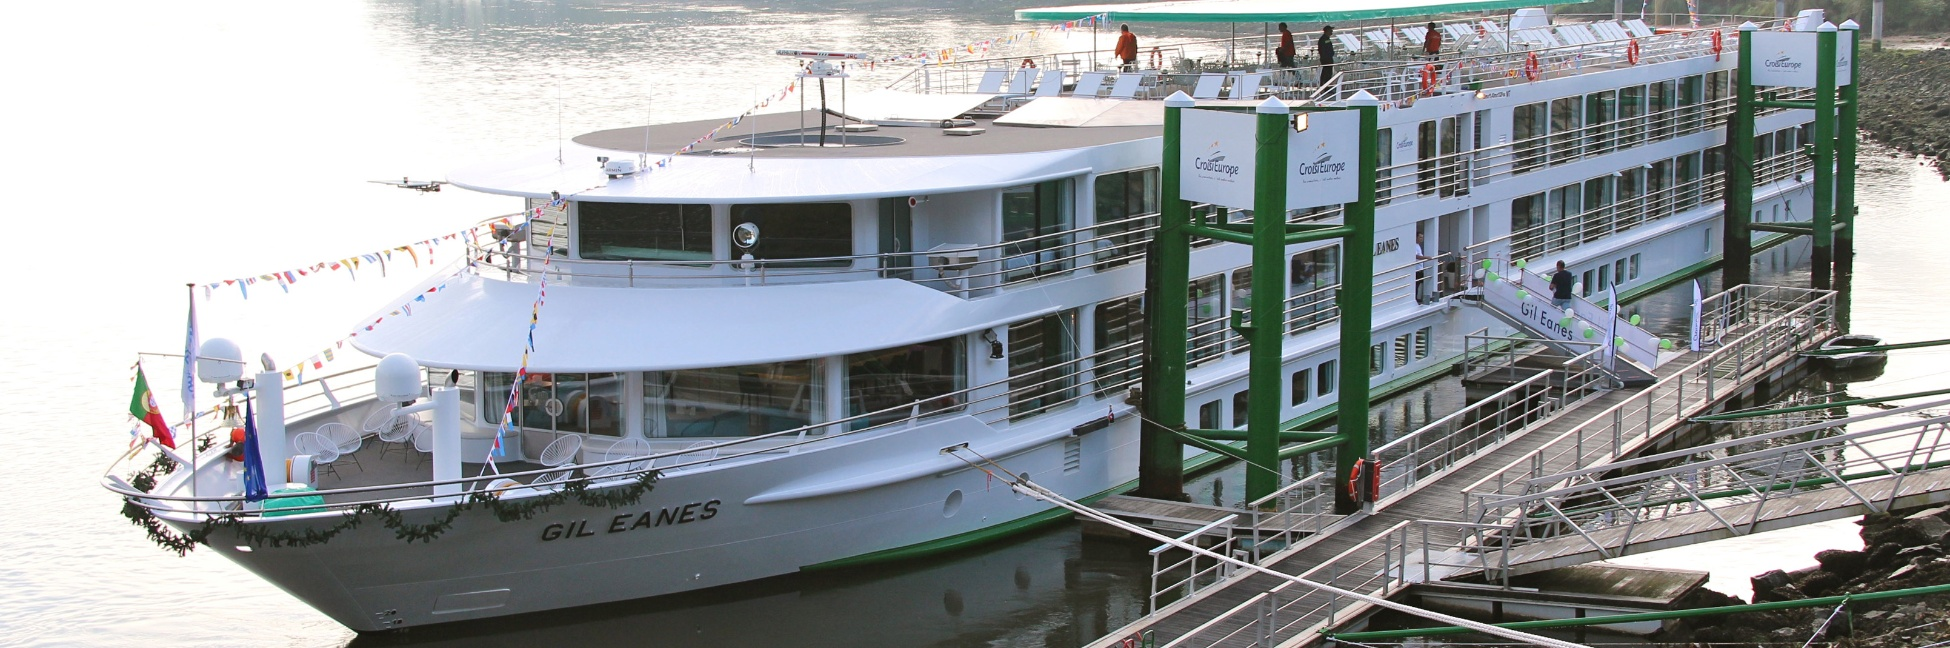 MS Gil Eanes docked.